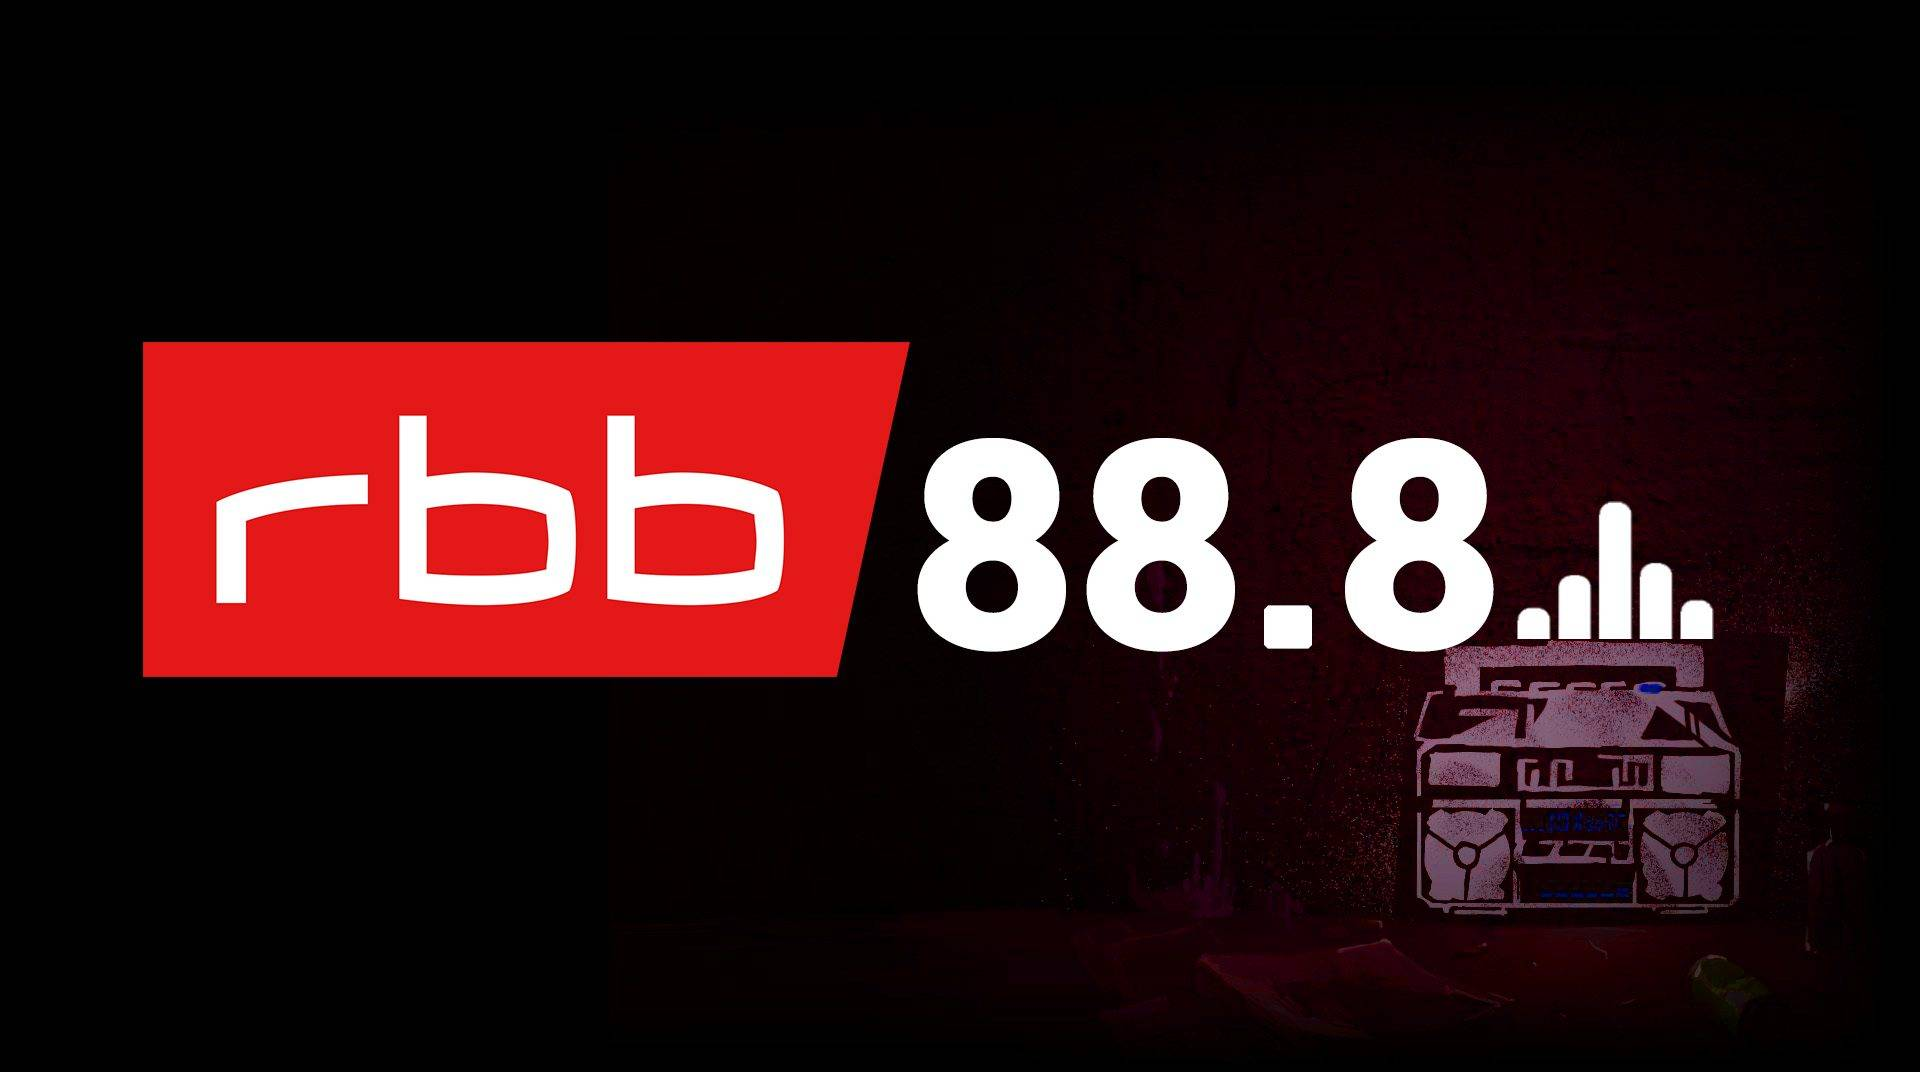 RBB 88.8 Radio station